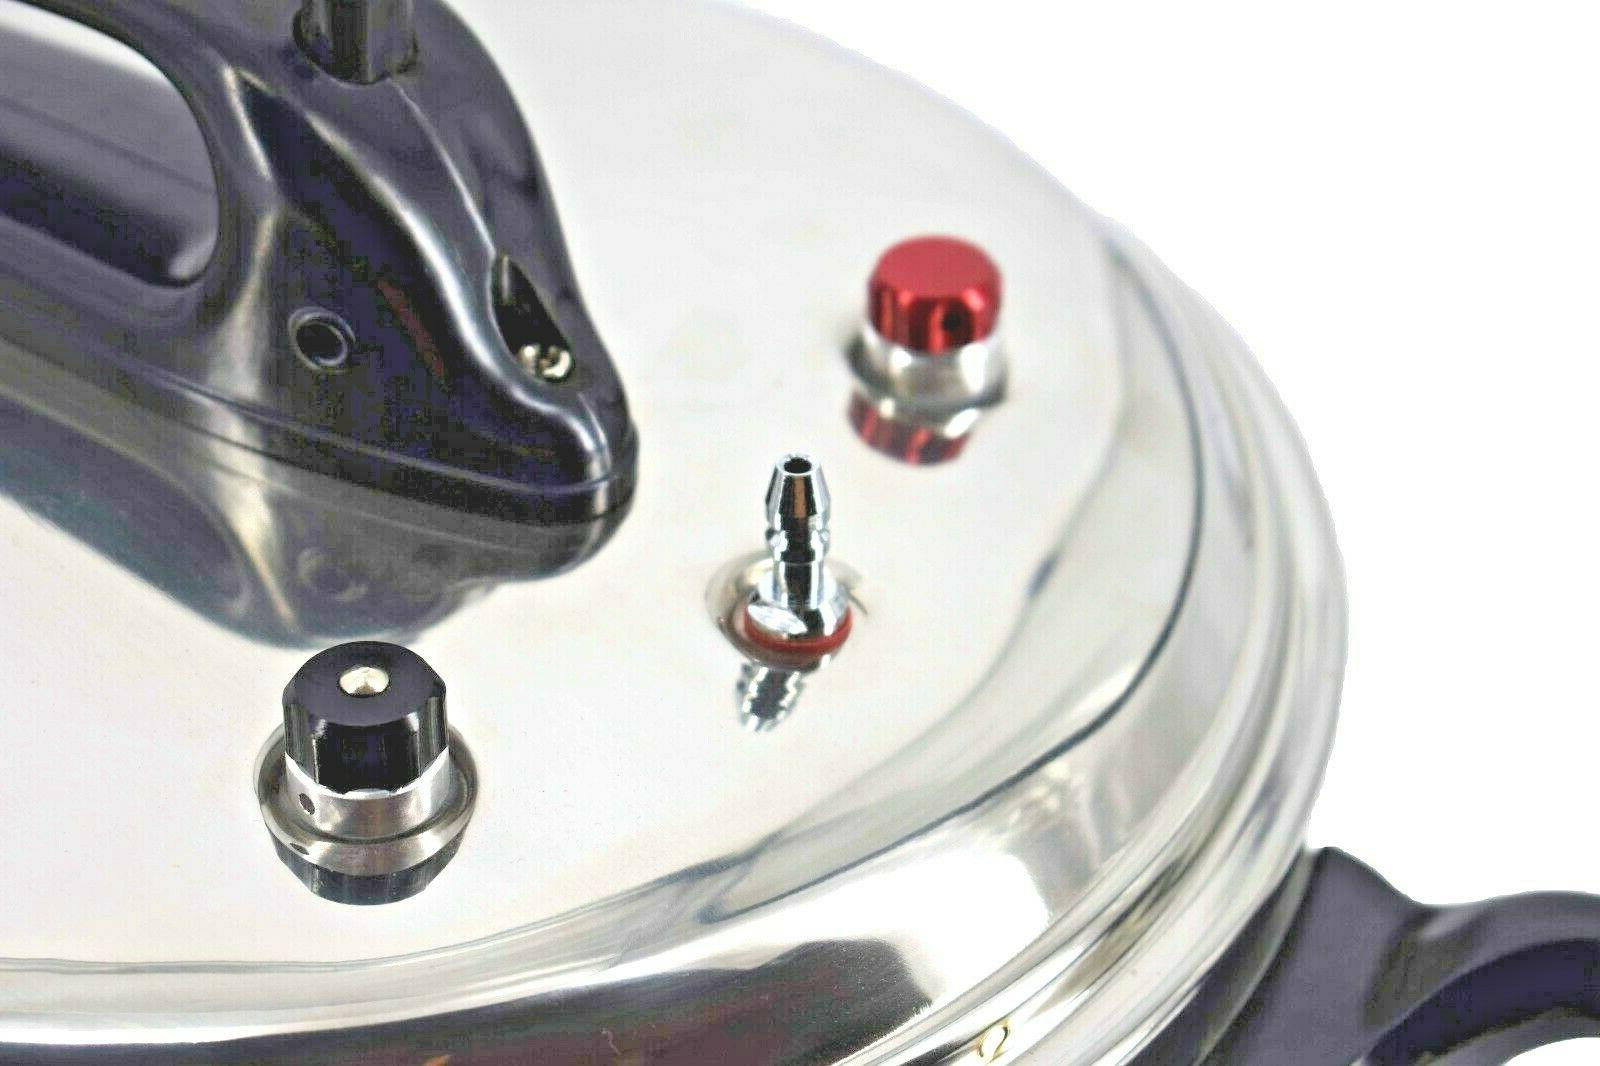 Stainless Steel Pressure With 6 Quarts,Silver